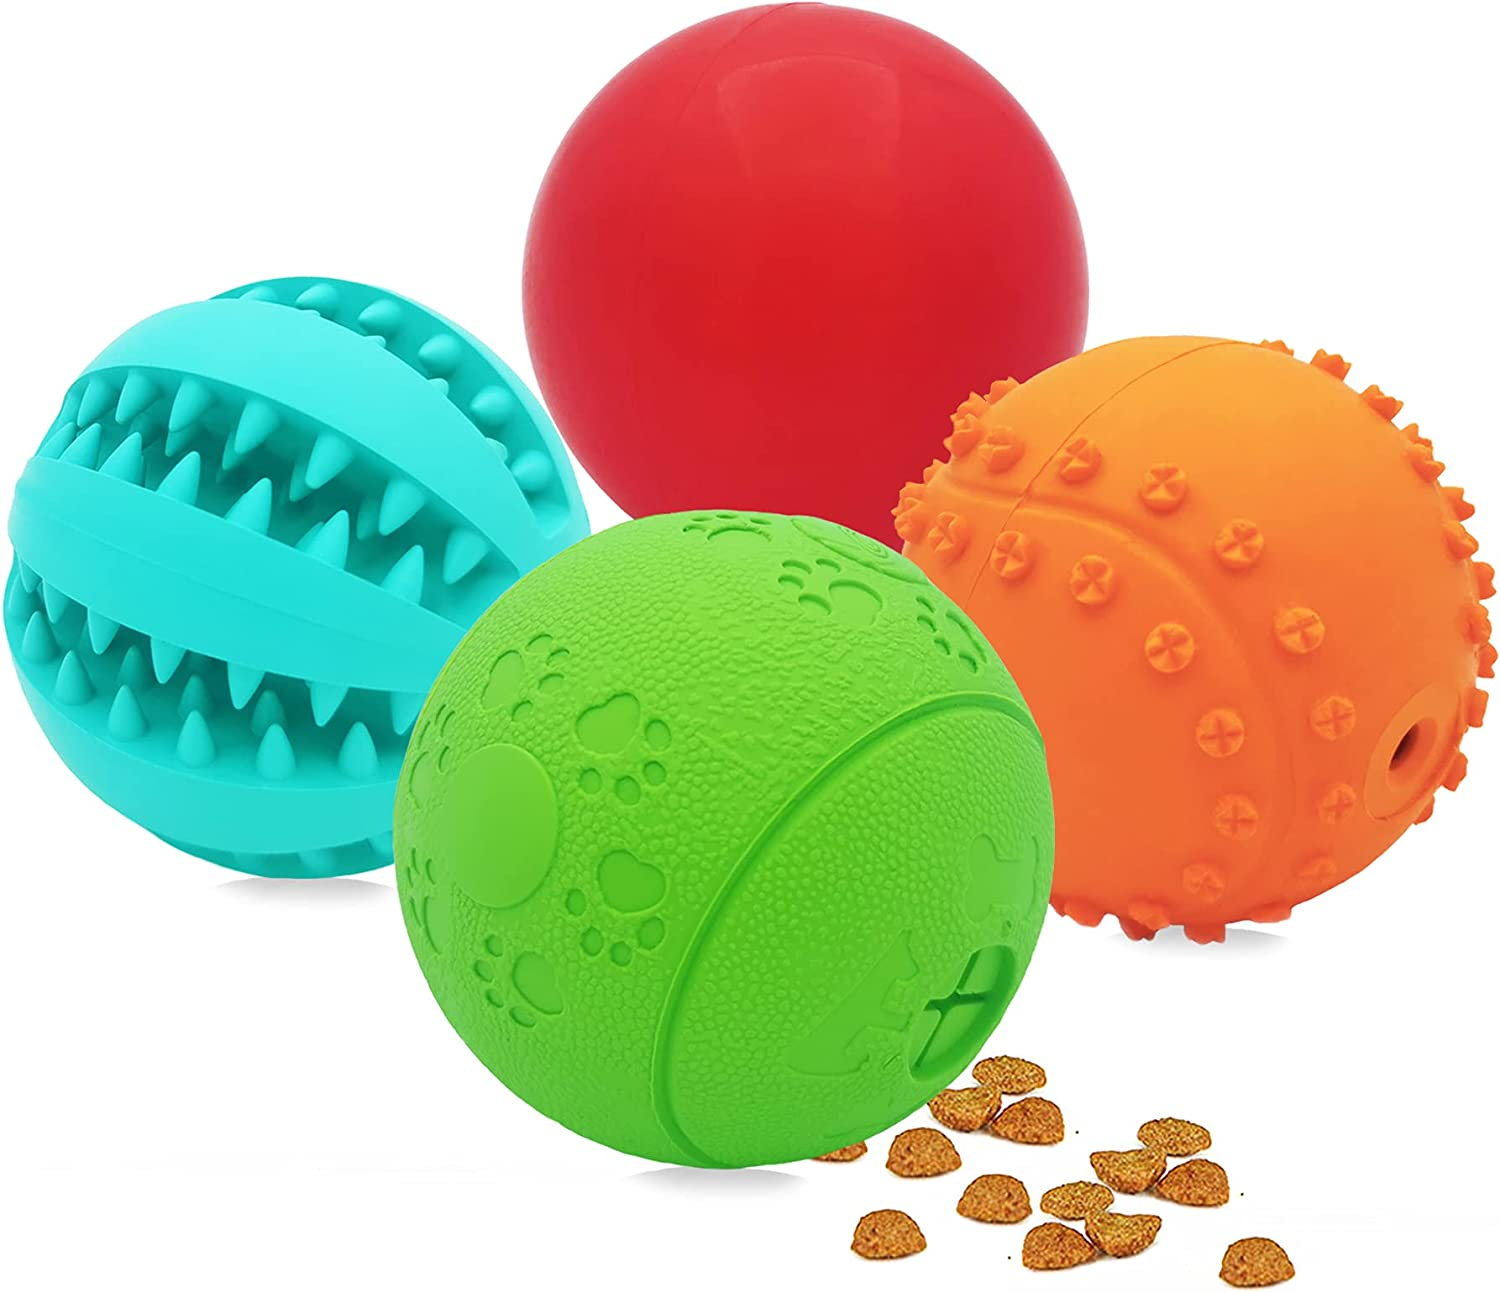 Dog Toy Balls, Pack of 4 Durable Dog Puzzle Ball Toys for Puppy Small Medium Breed Dogs Interactive Pet Dog Ball Chew Toys for Teething Cleaning/Food Treat Dispenser for IQ Training/Squeaky Balls Toys